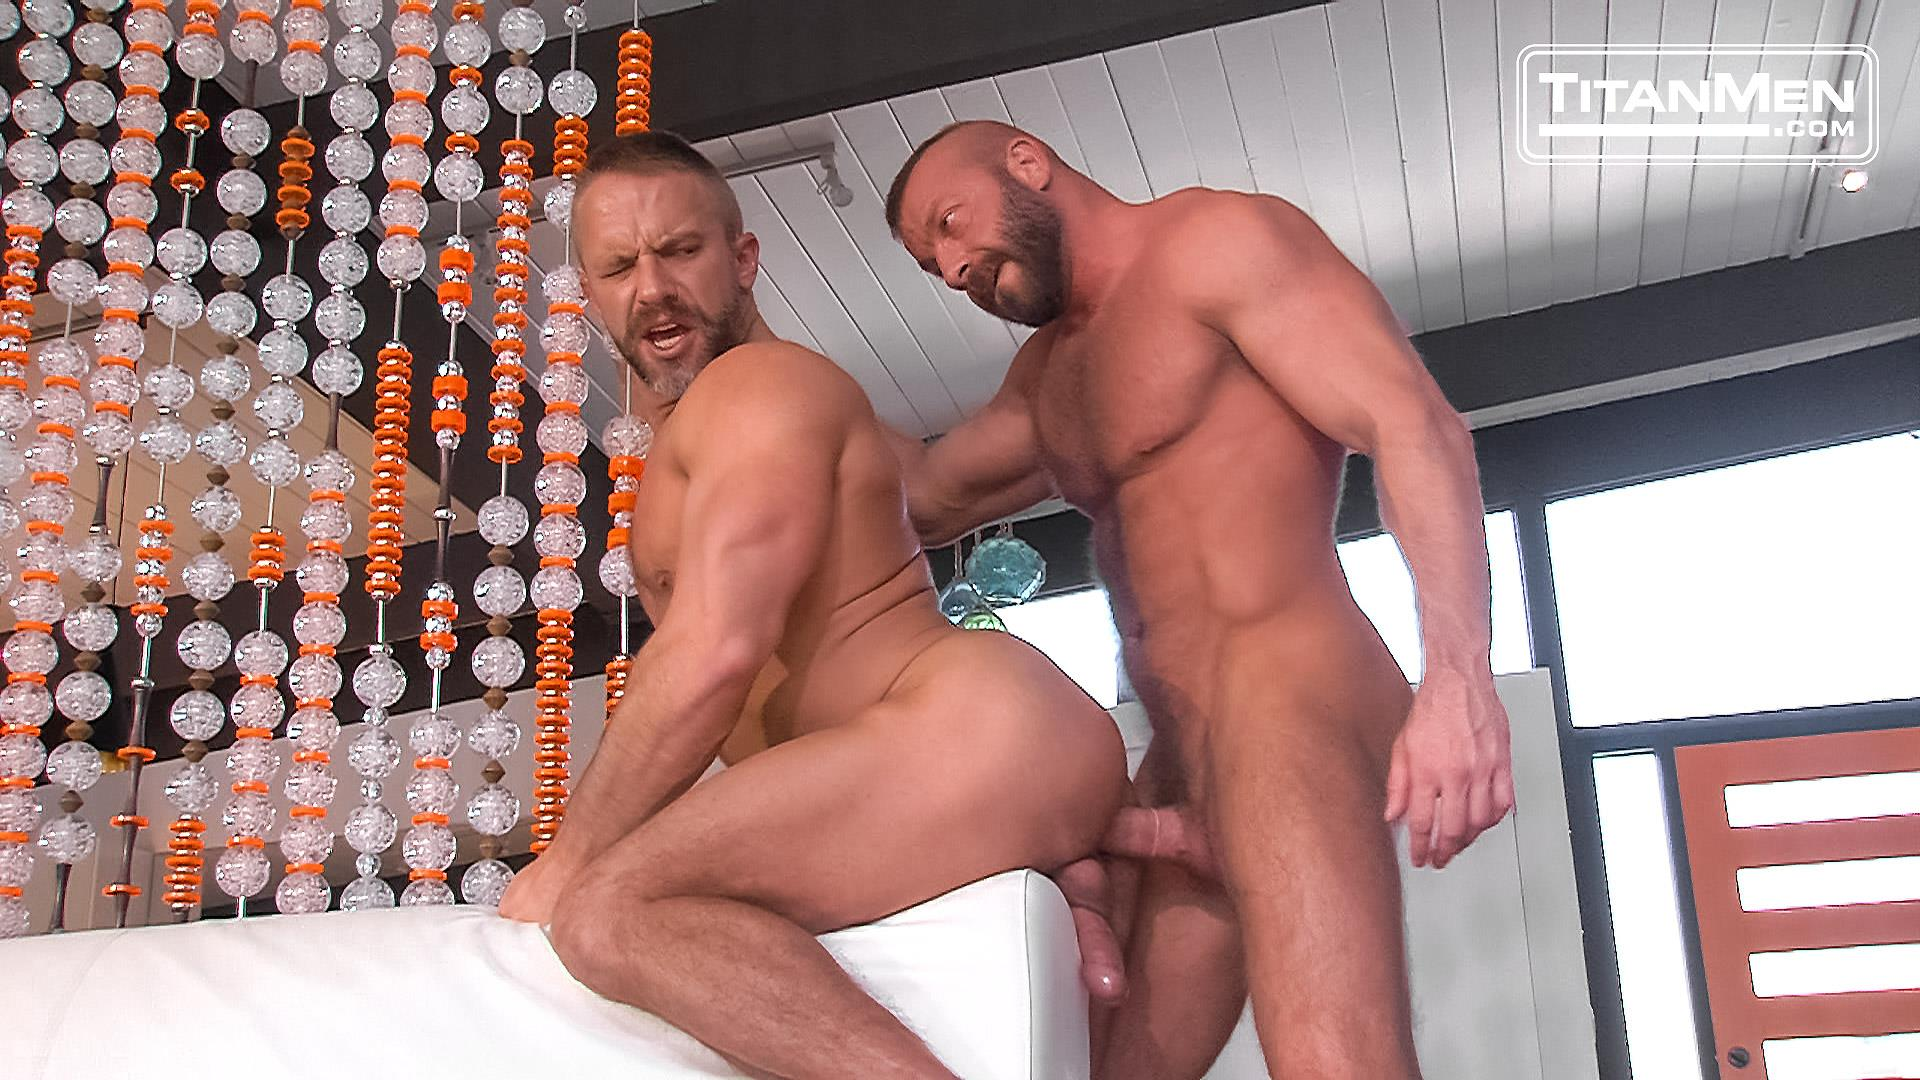 Titanmen-Titan-Hunter-Marx-and-Dirk-Caber-Hairy-Muscle-Daddy-Fuck-Amateur-Gay-Porn-34 Dirk Carber Gets Fucked Hard By Another Muscle Daddy With A Thick Cock